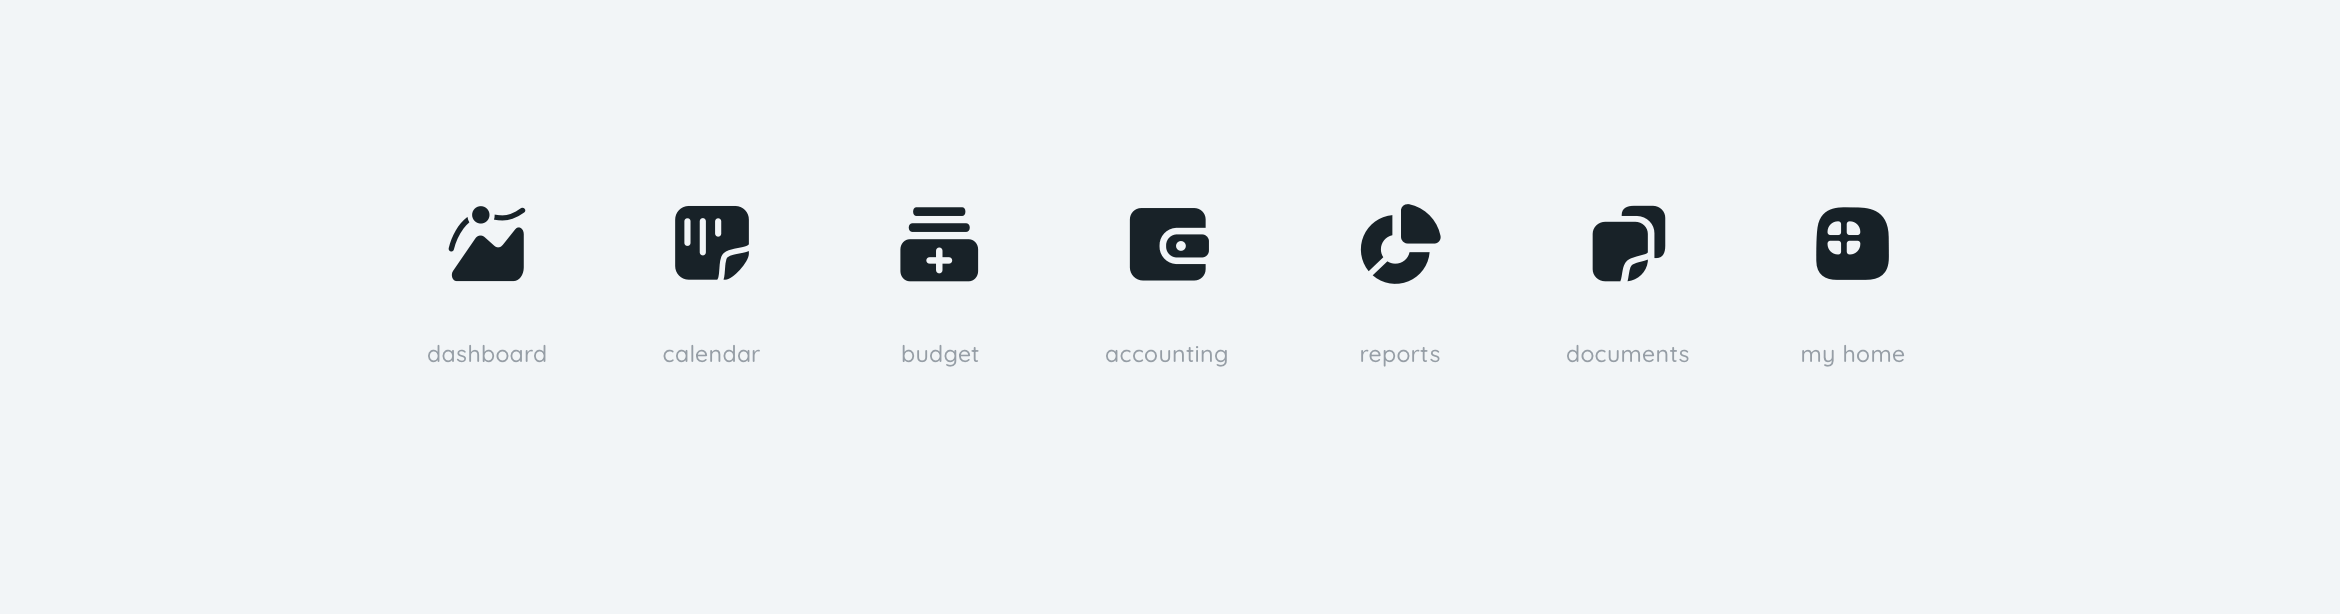 2homes product UI icons